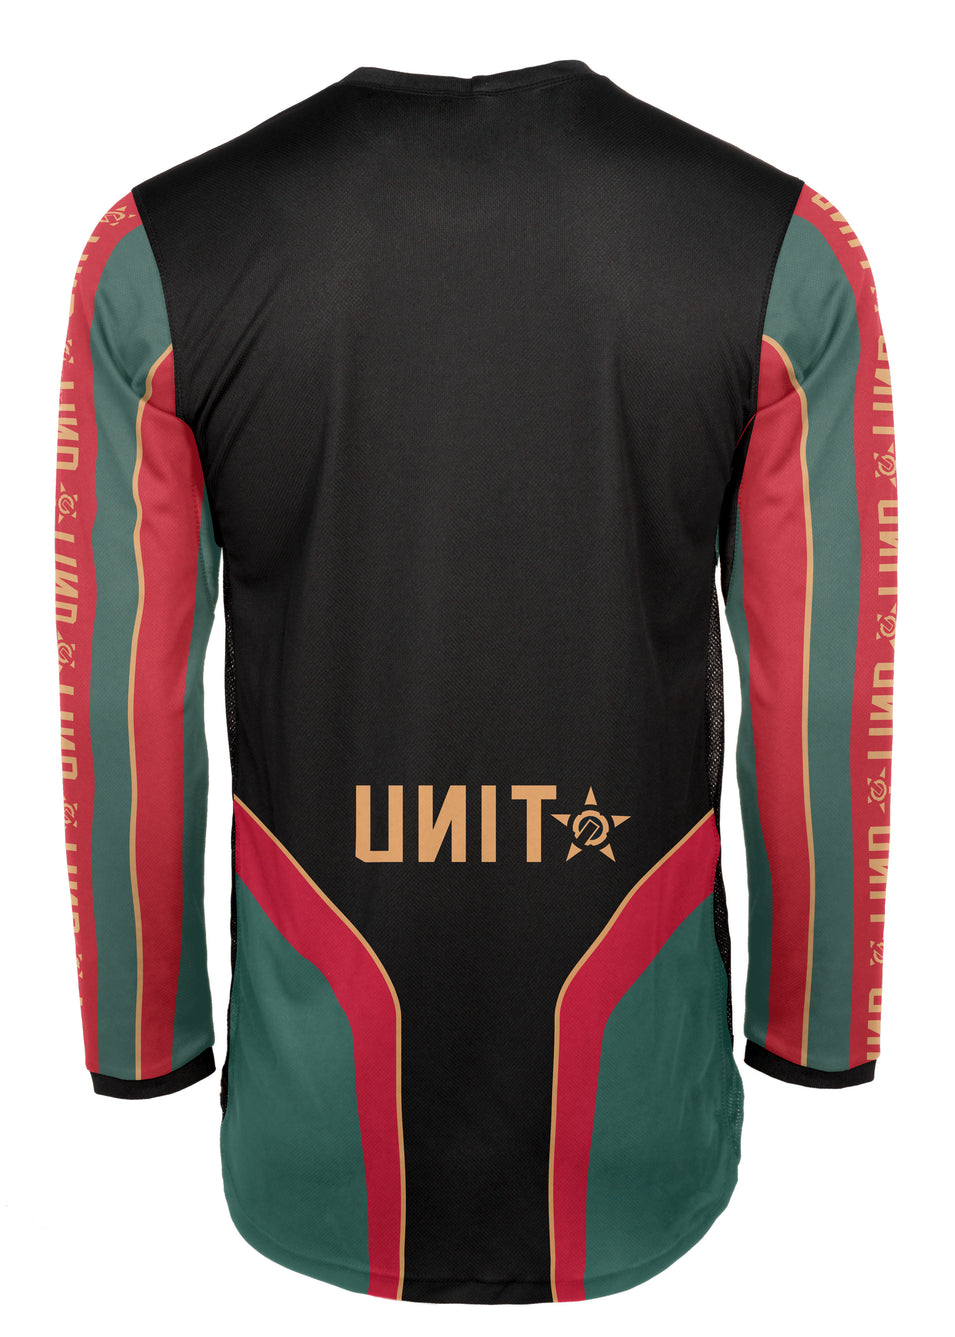 Luxo MX Jersey - Slim Fit